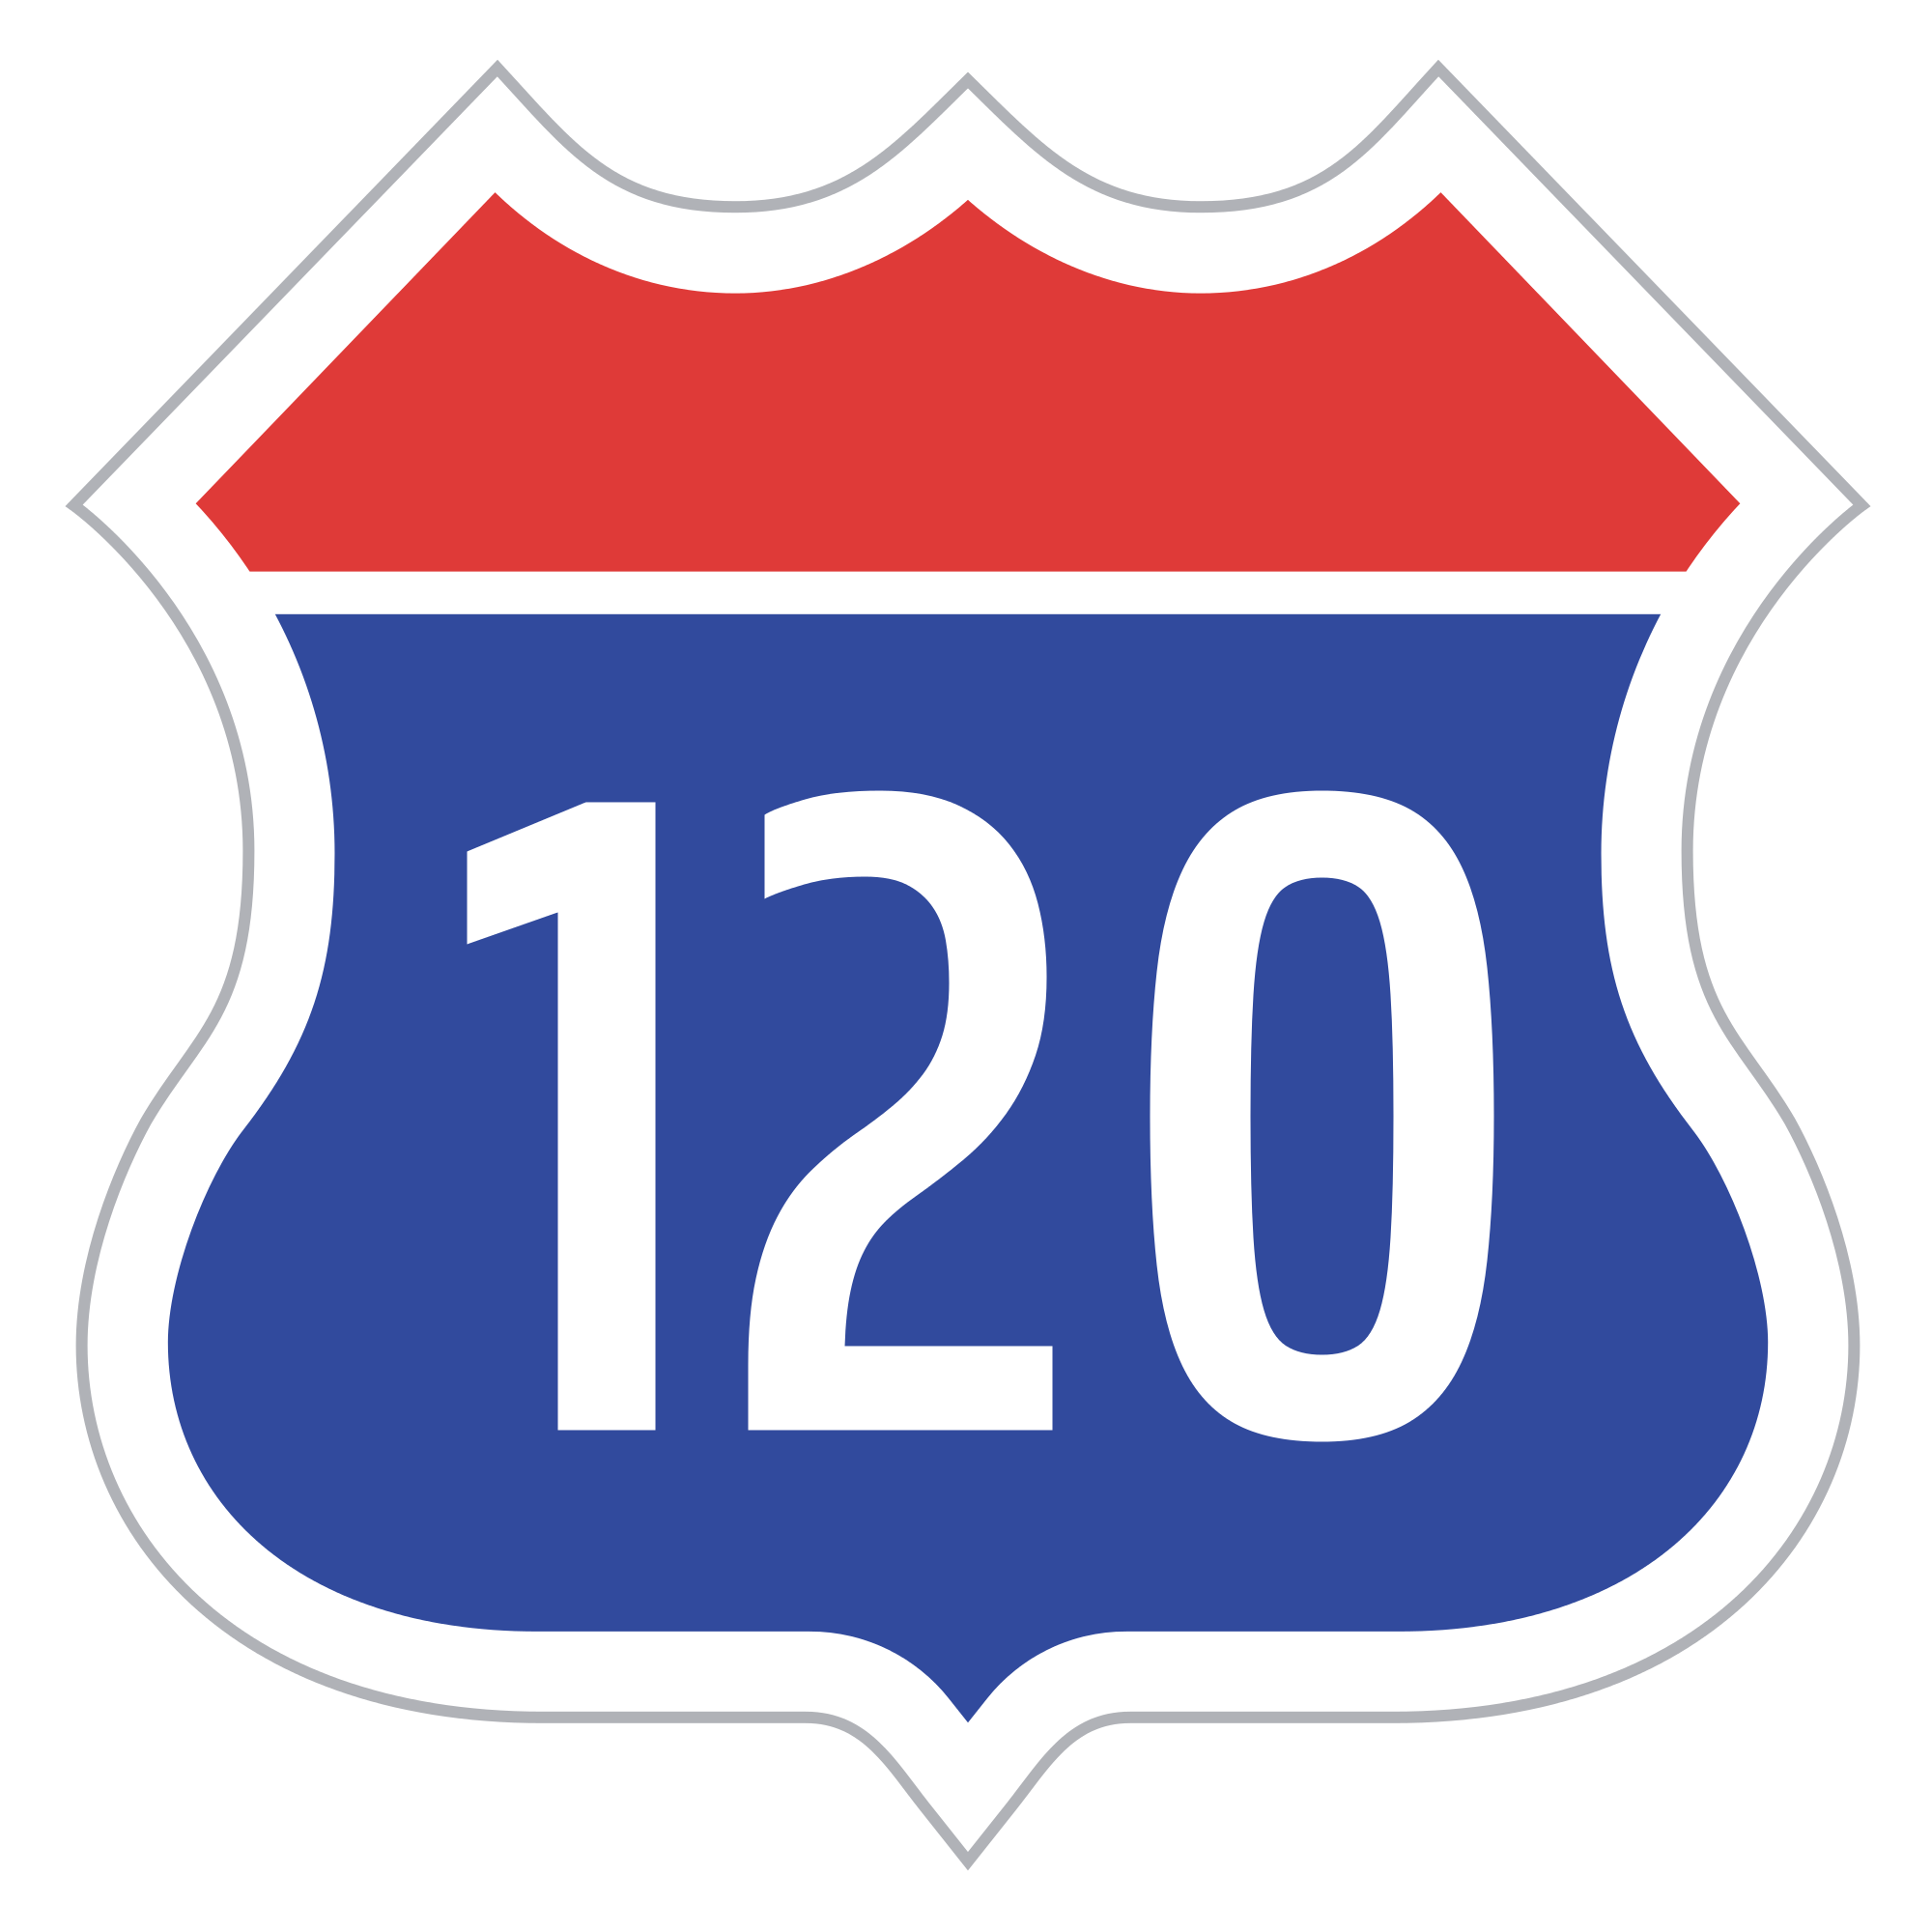 Number 1 clipart number 120. File korea expressway no